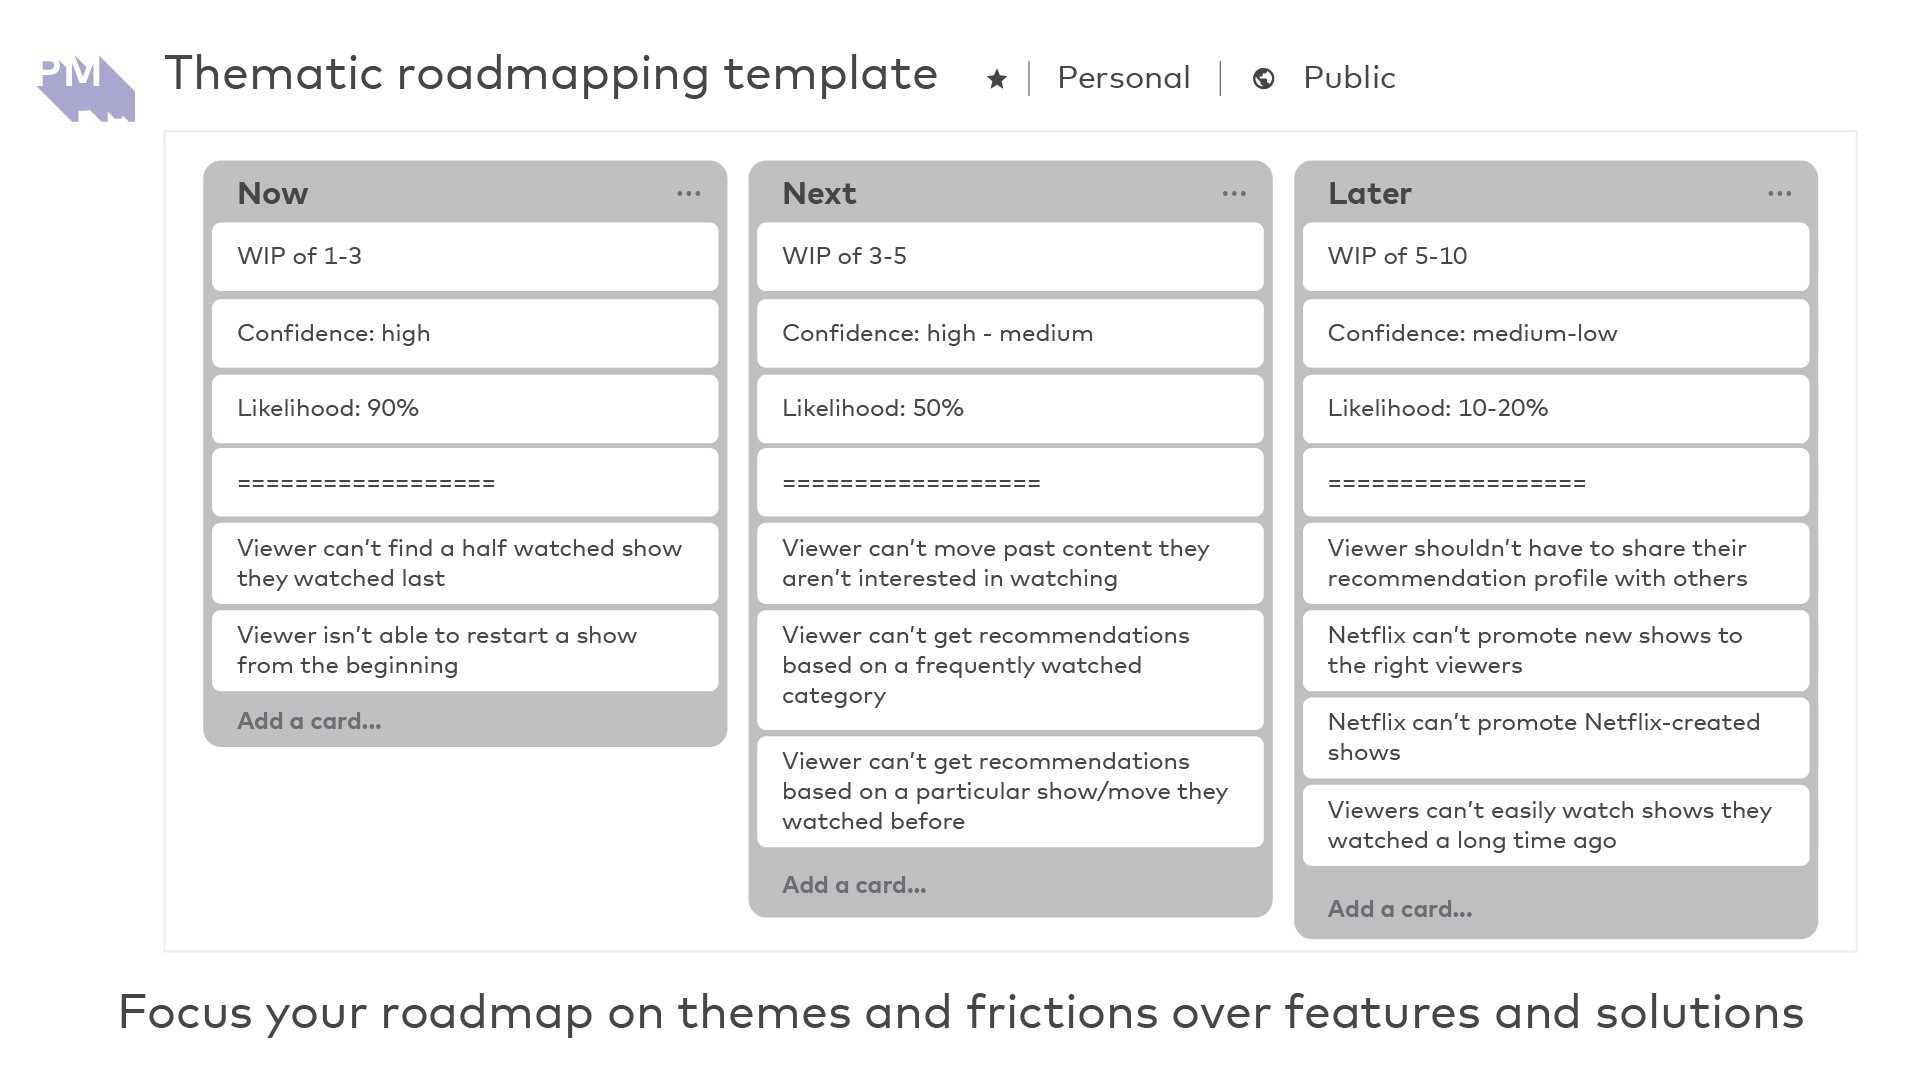 Focus your roadmap on themes and frictions over features and solutions